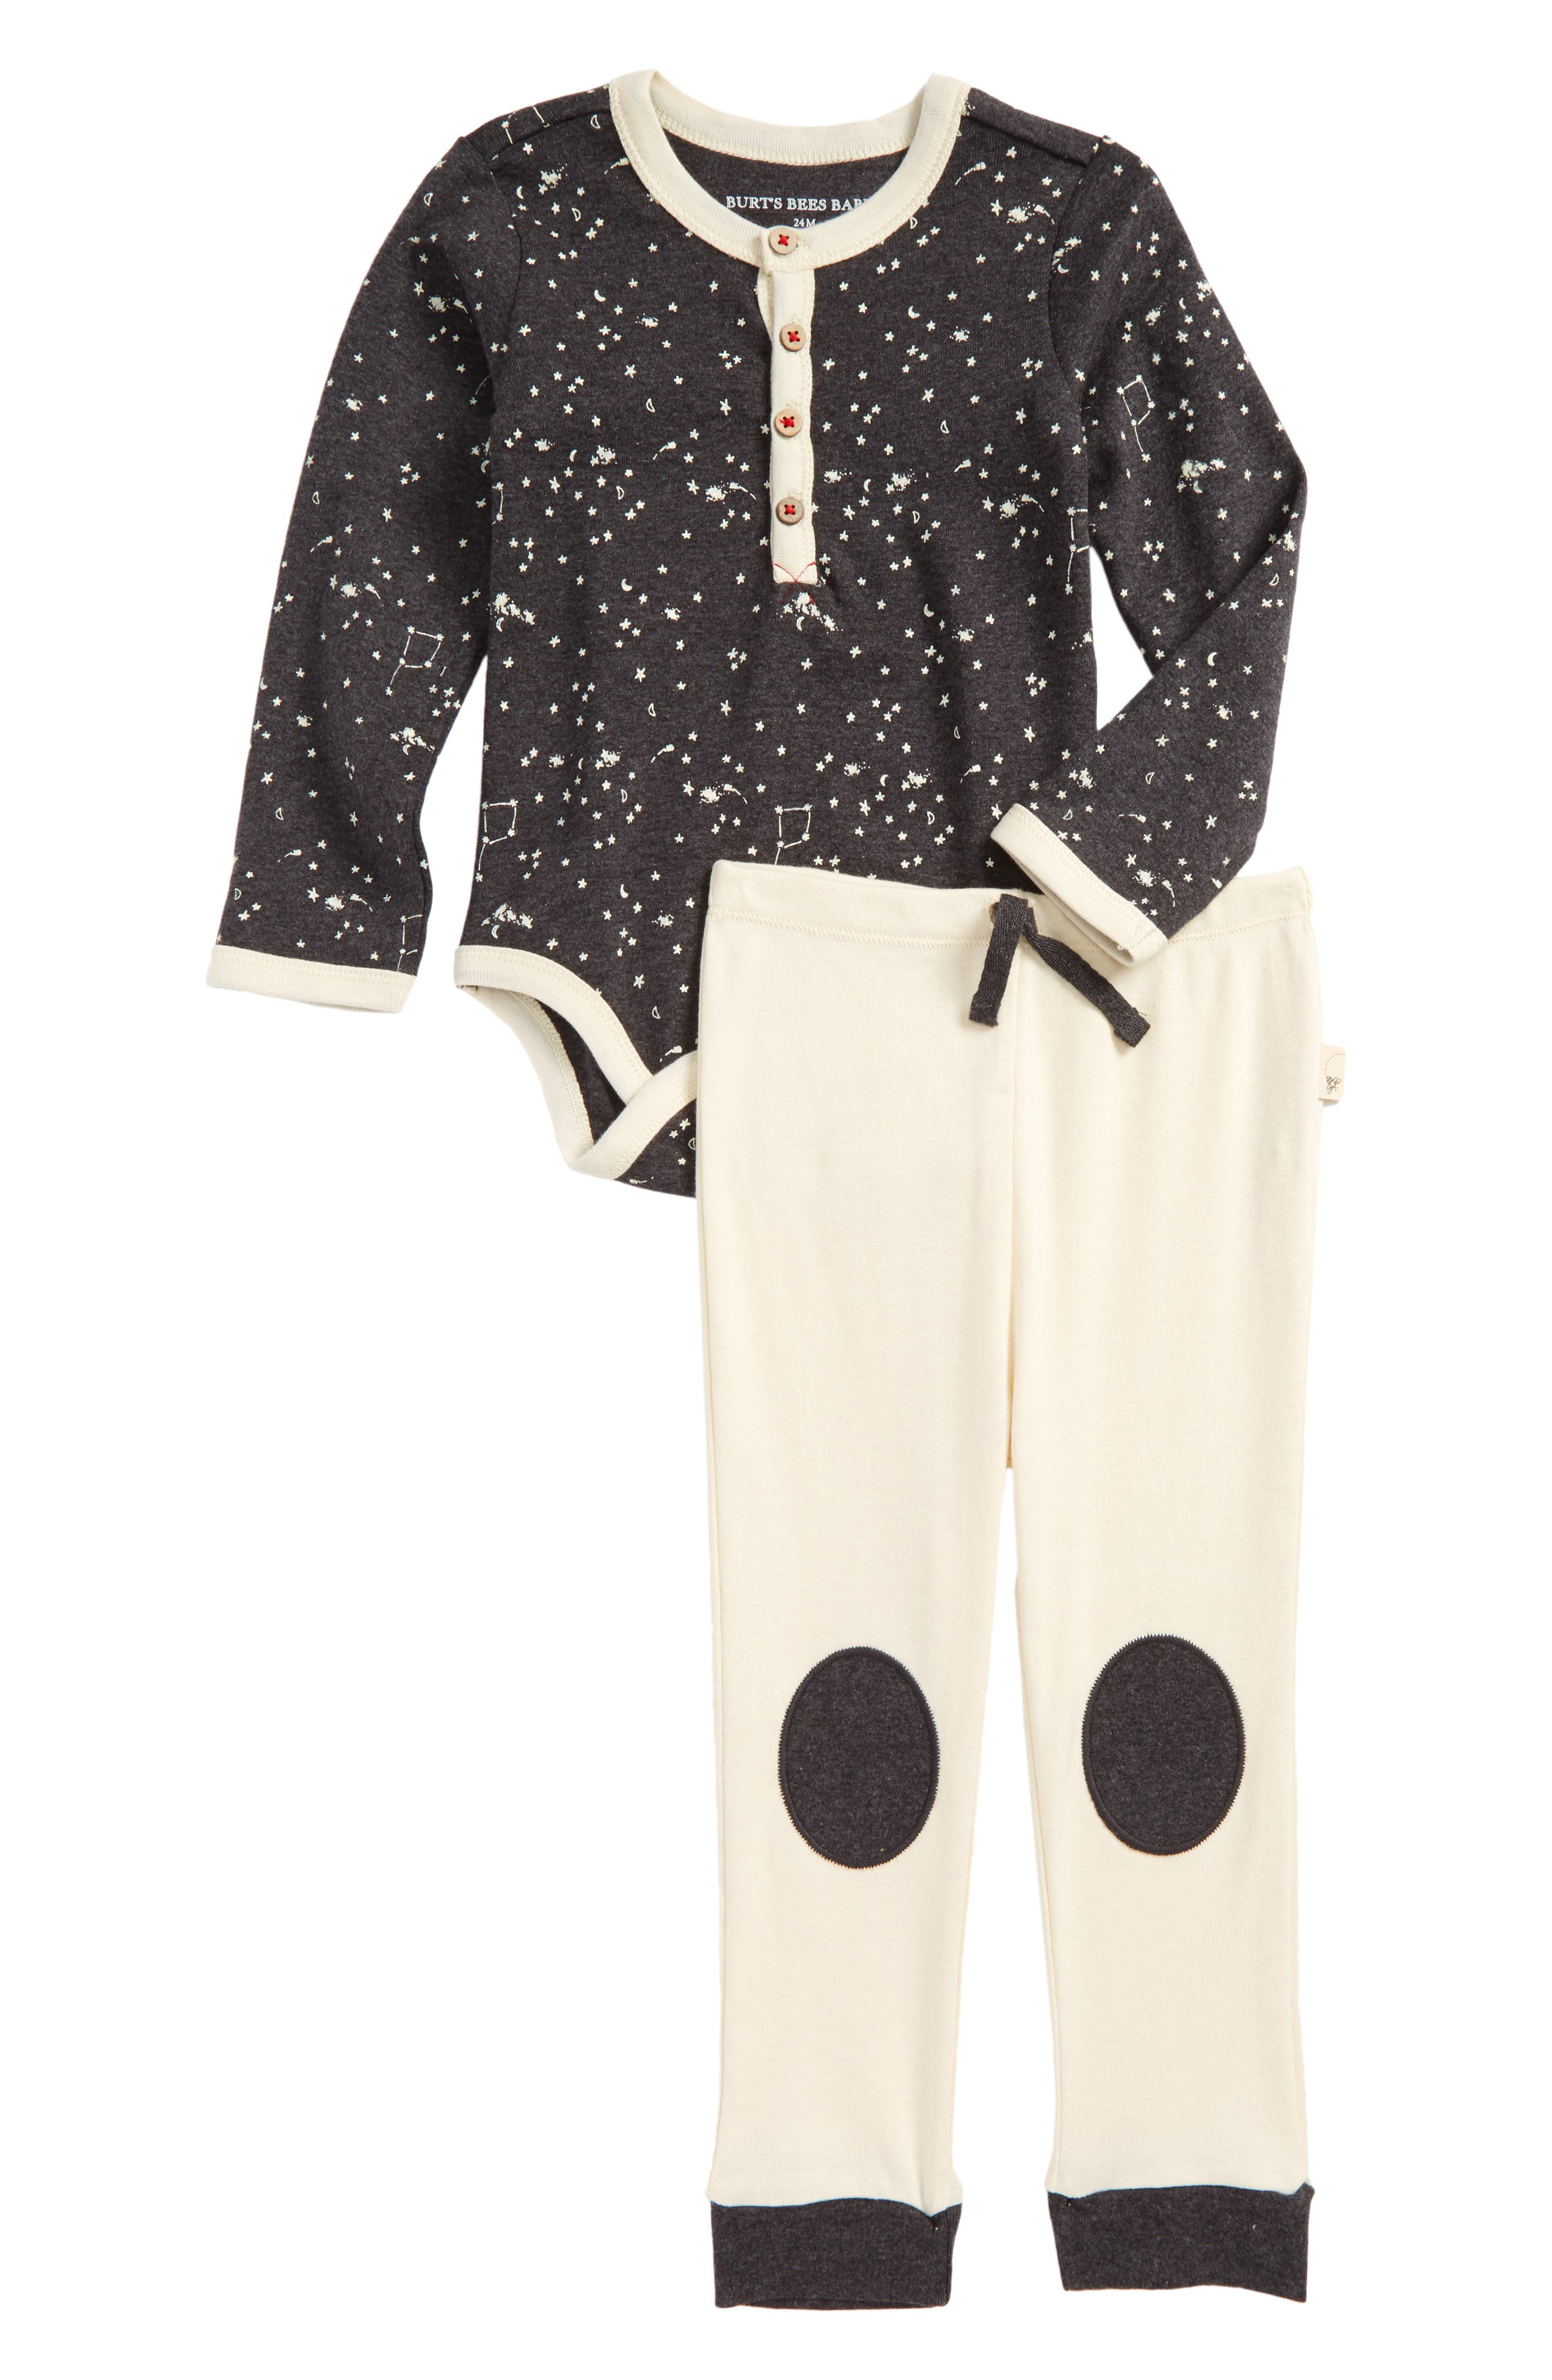 Burt's Bees Organic Cotton Bodysuit & Pants Set,                             Main thumbnail 1, color,                             024